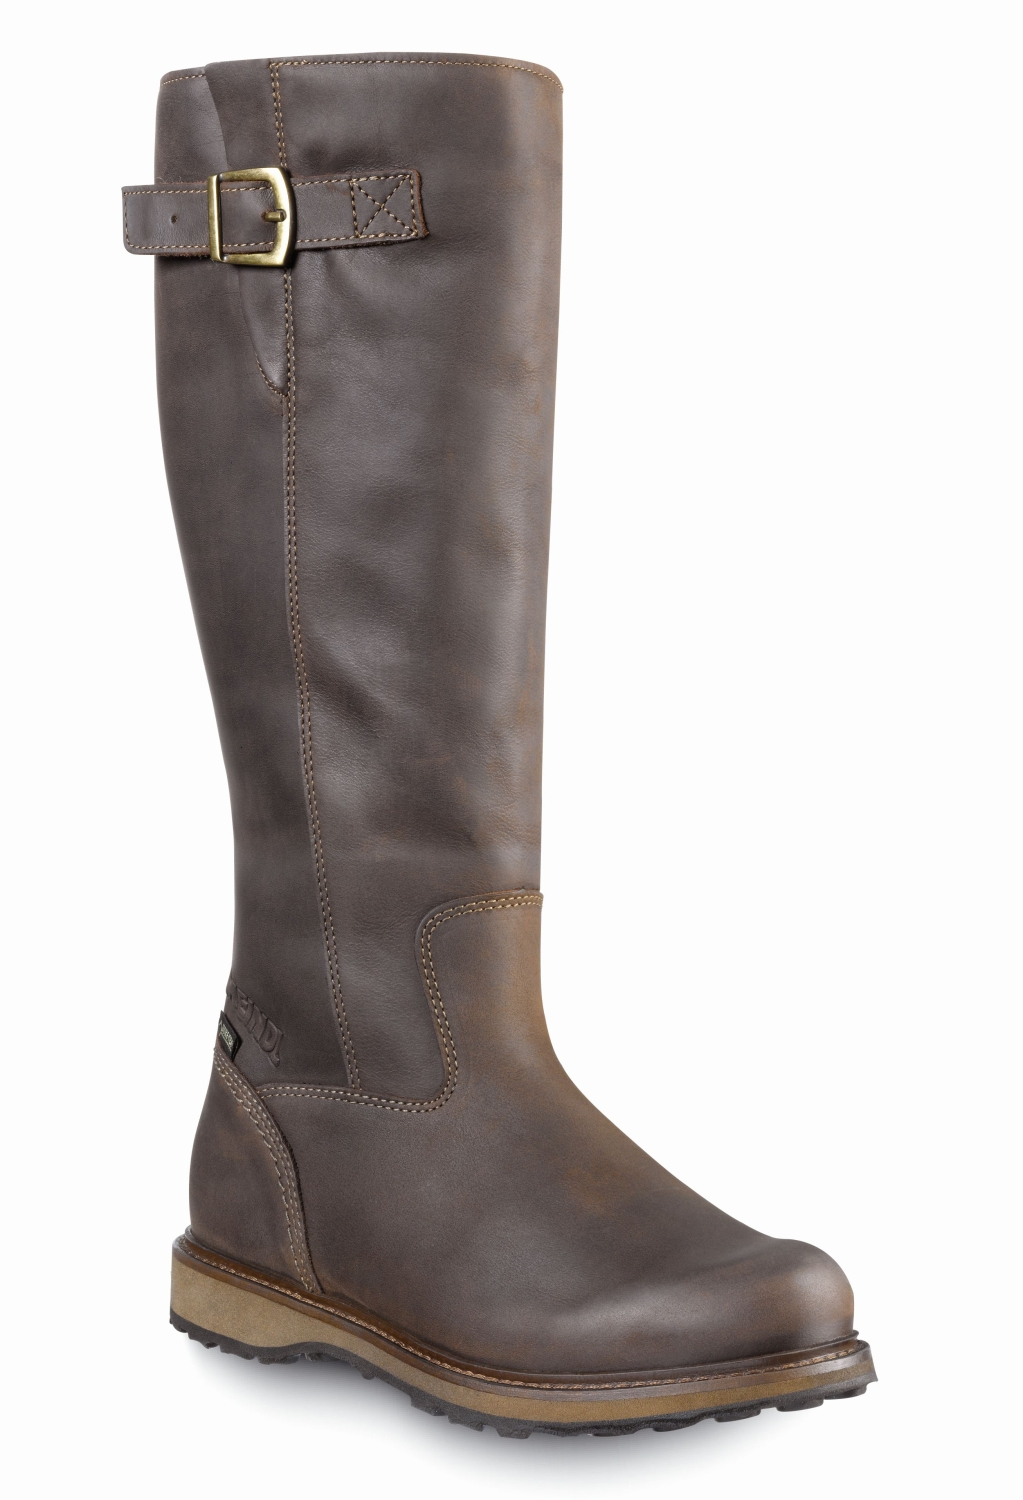 official site differently 2018 shoes Meindl Valluga Lady GTX Winterstiefel (braun)